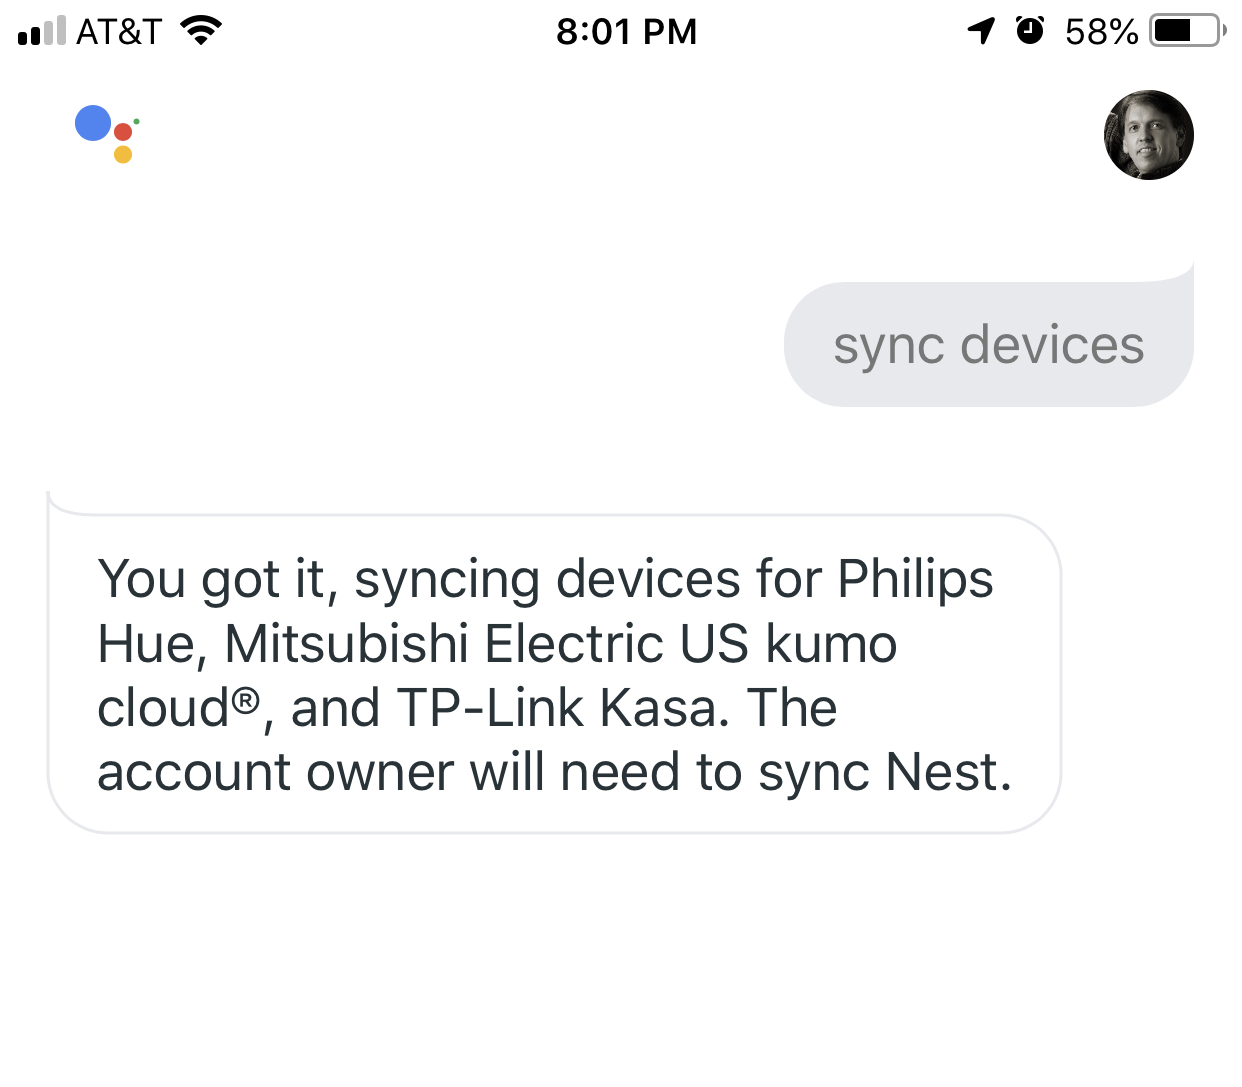 The account owner will need to sync message - Google Home Help